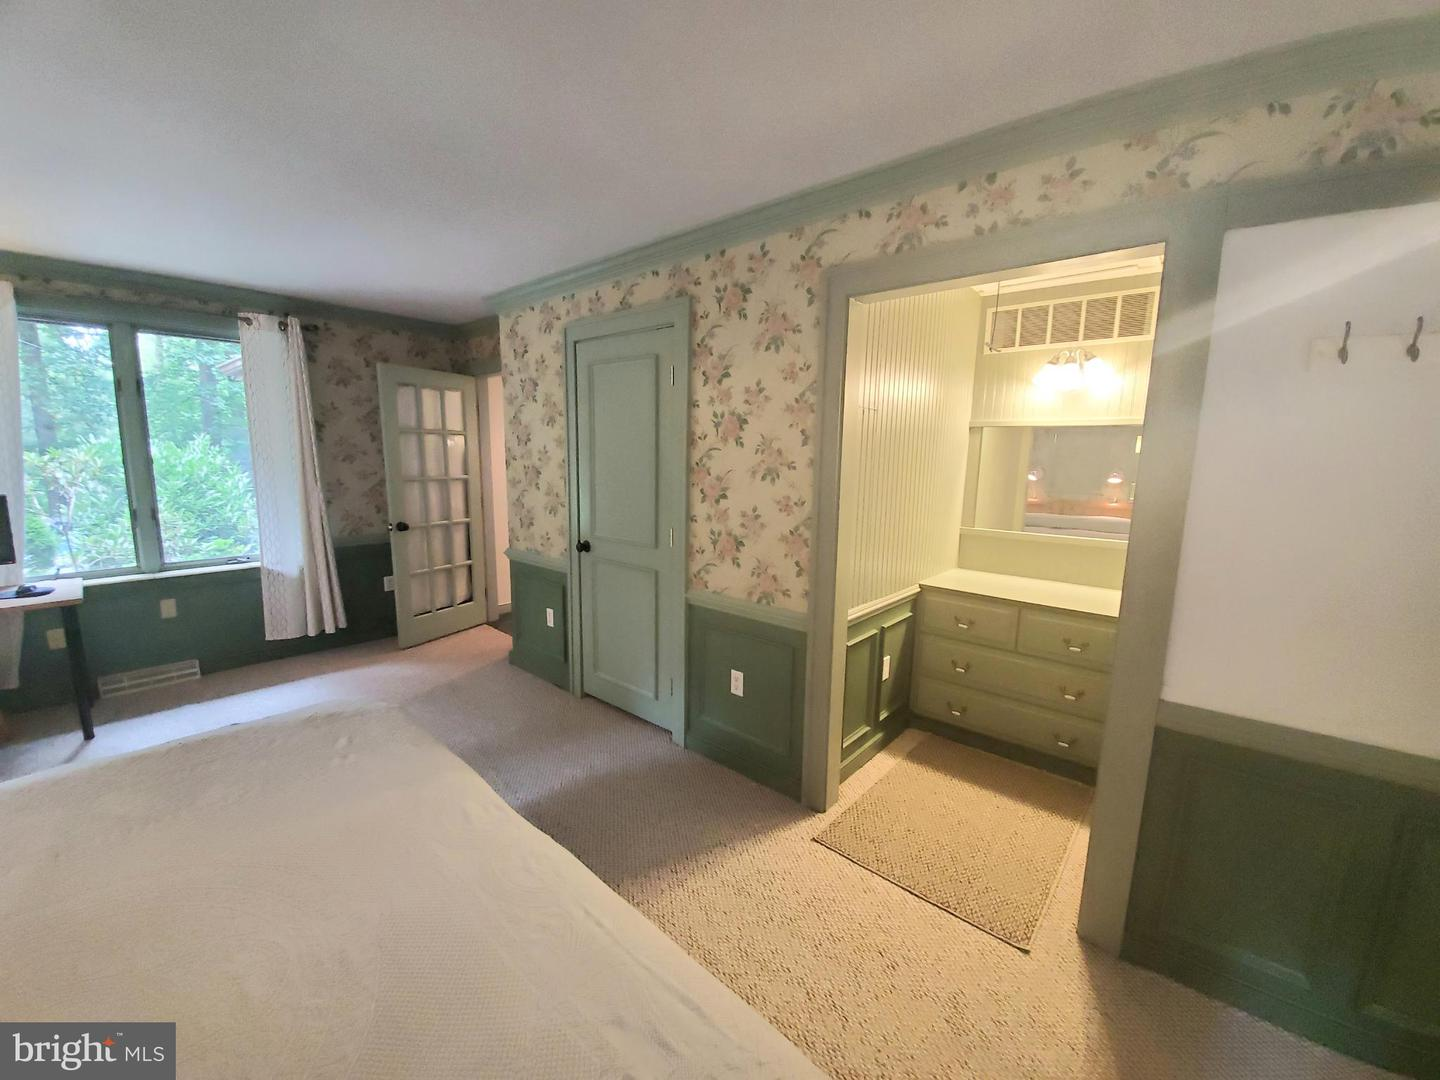 162 Huckleberry, Harpers Ferry, WV, 25425